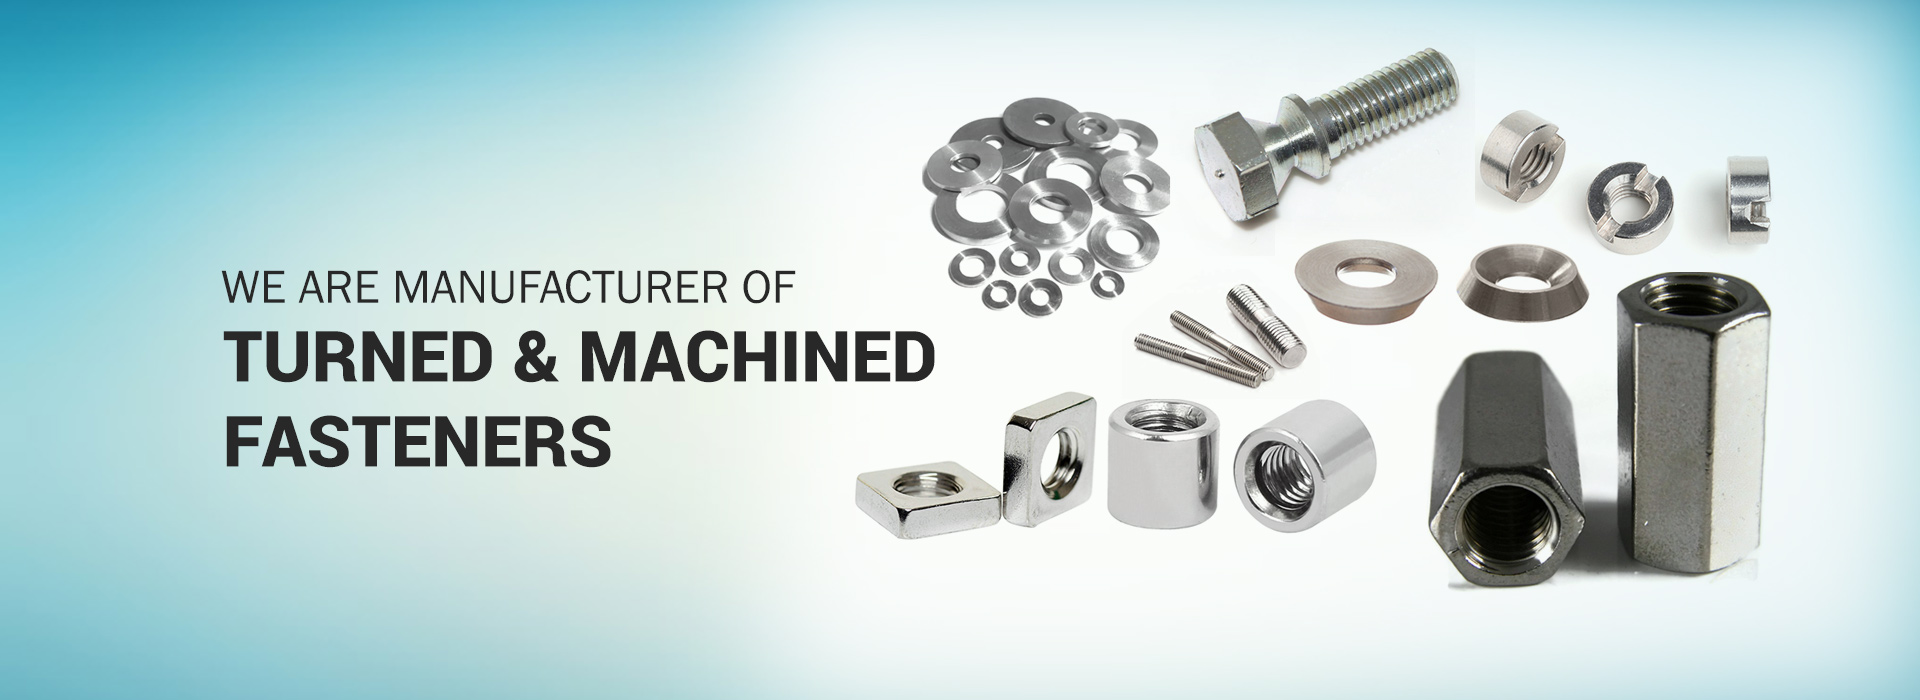 We are Manufacturer of Turned & Machined Fasterers, Stainless Steel Bolt Manufacturer